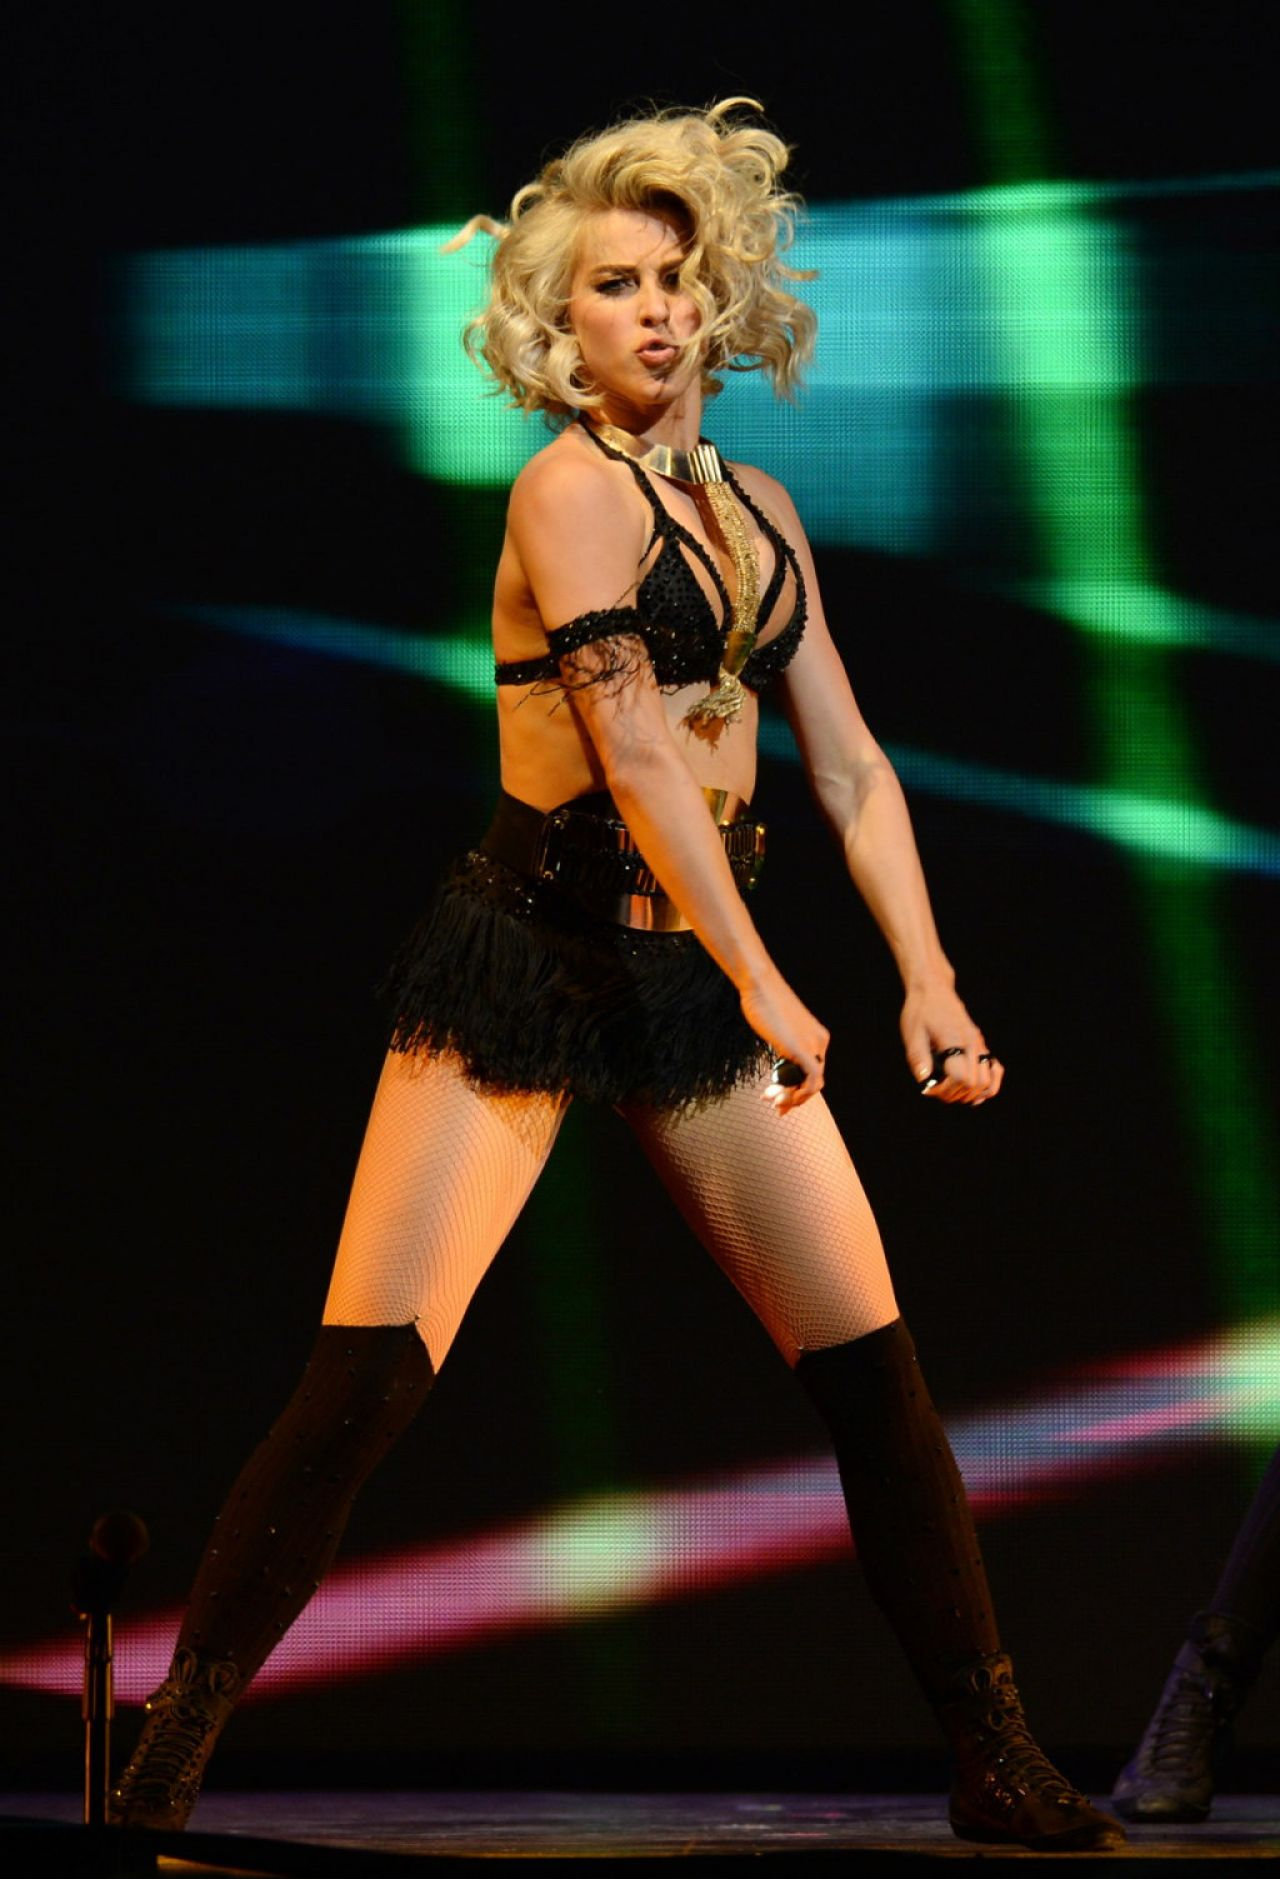 Julianne Hough Performing At Move Live On Tour In